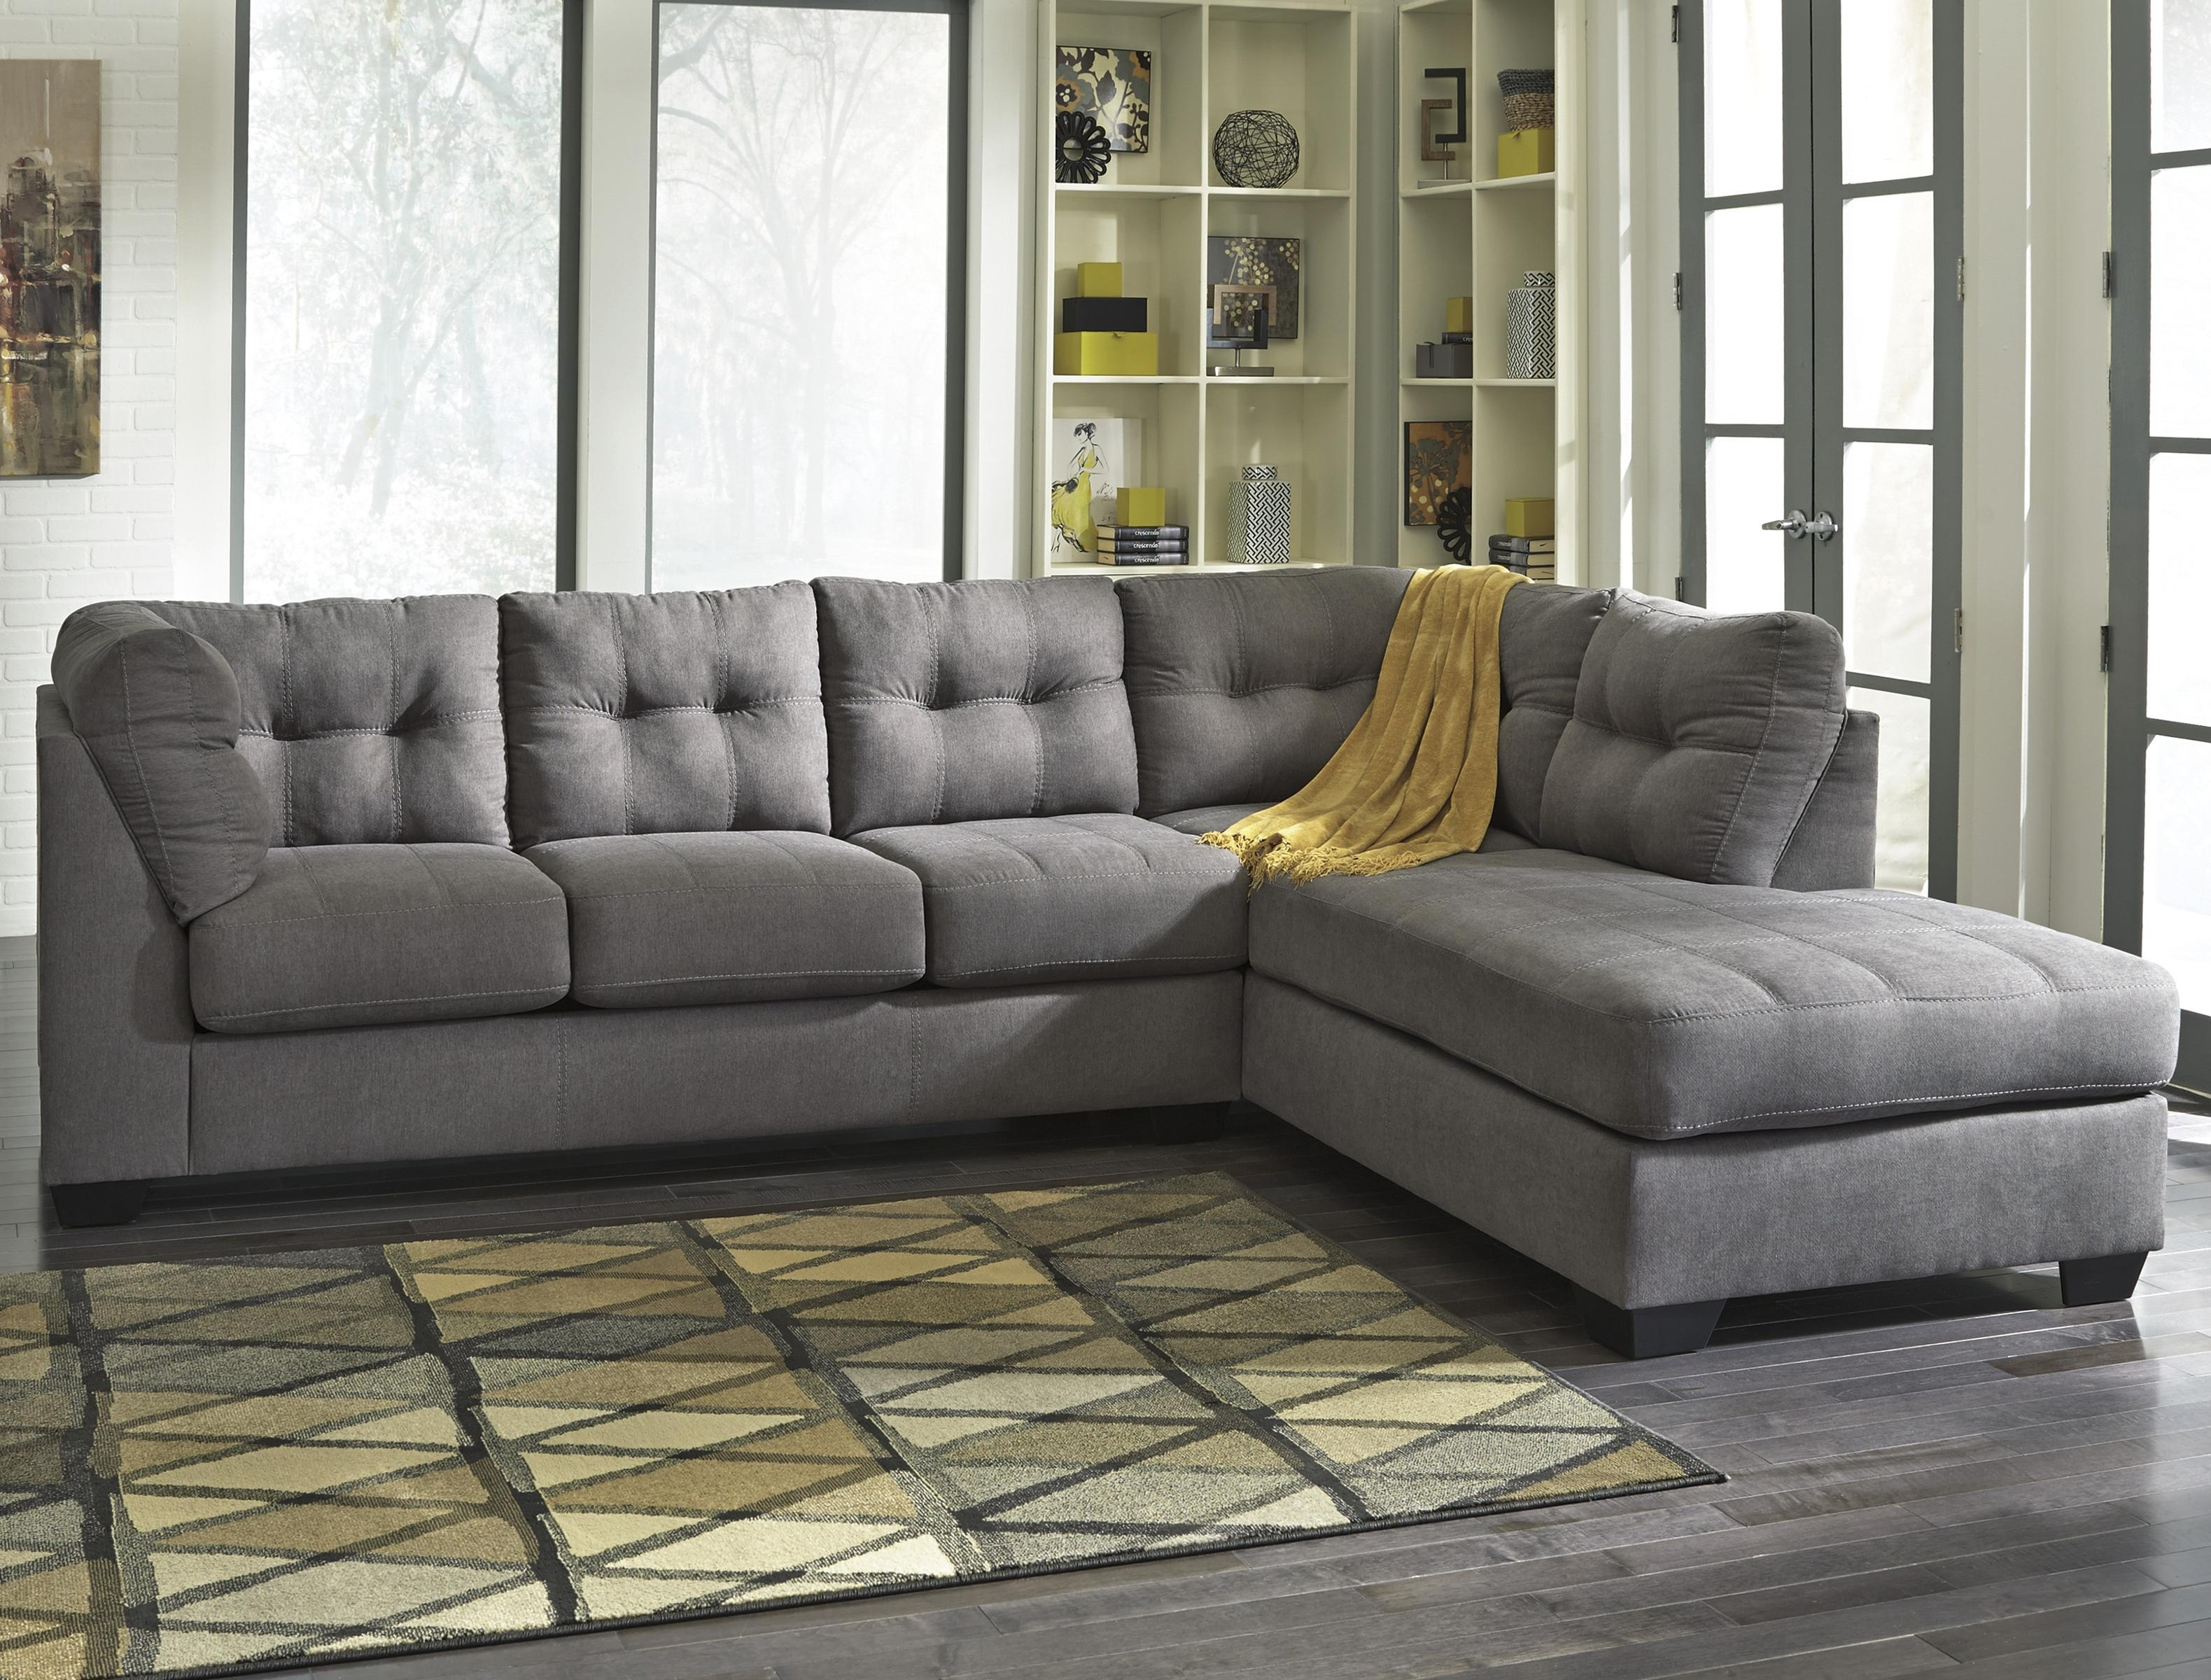 Benchcraft Maier - Charcoal 2-Piece Sectional W/ Sleeper Sofa throughout Sectional Sofas With 2 Chaises